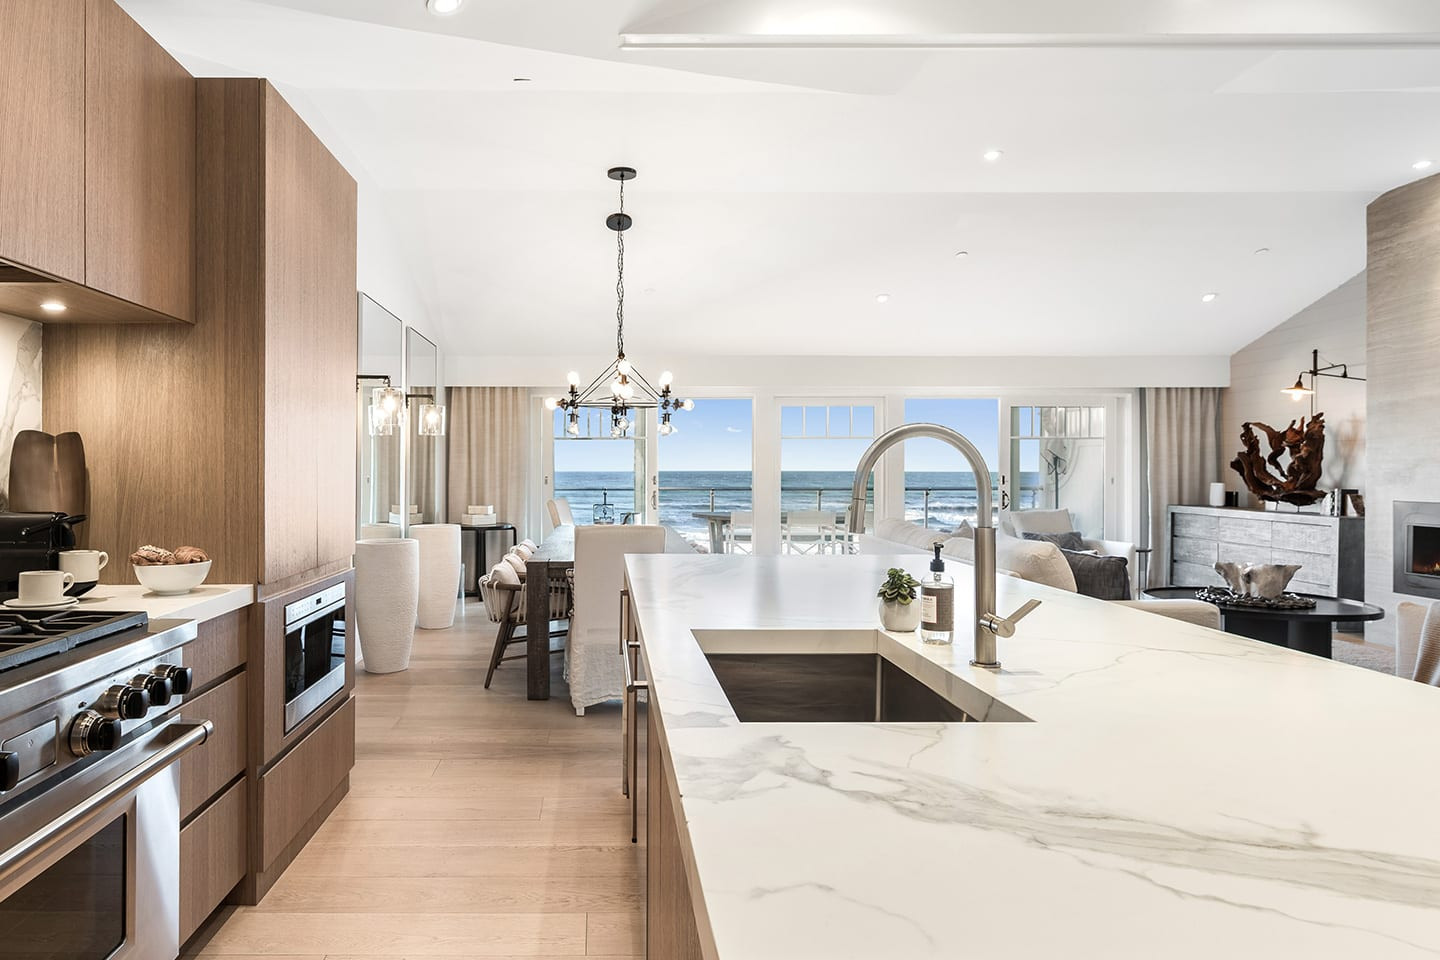 Wide view of Salt Sea 5 kitchen looking out to the living room and dining area with a deck overlooking the ocean